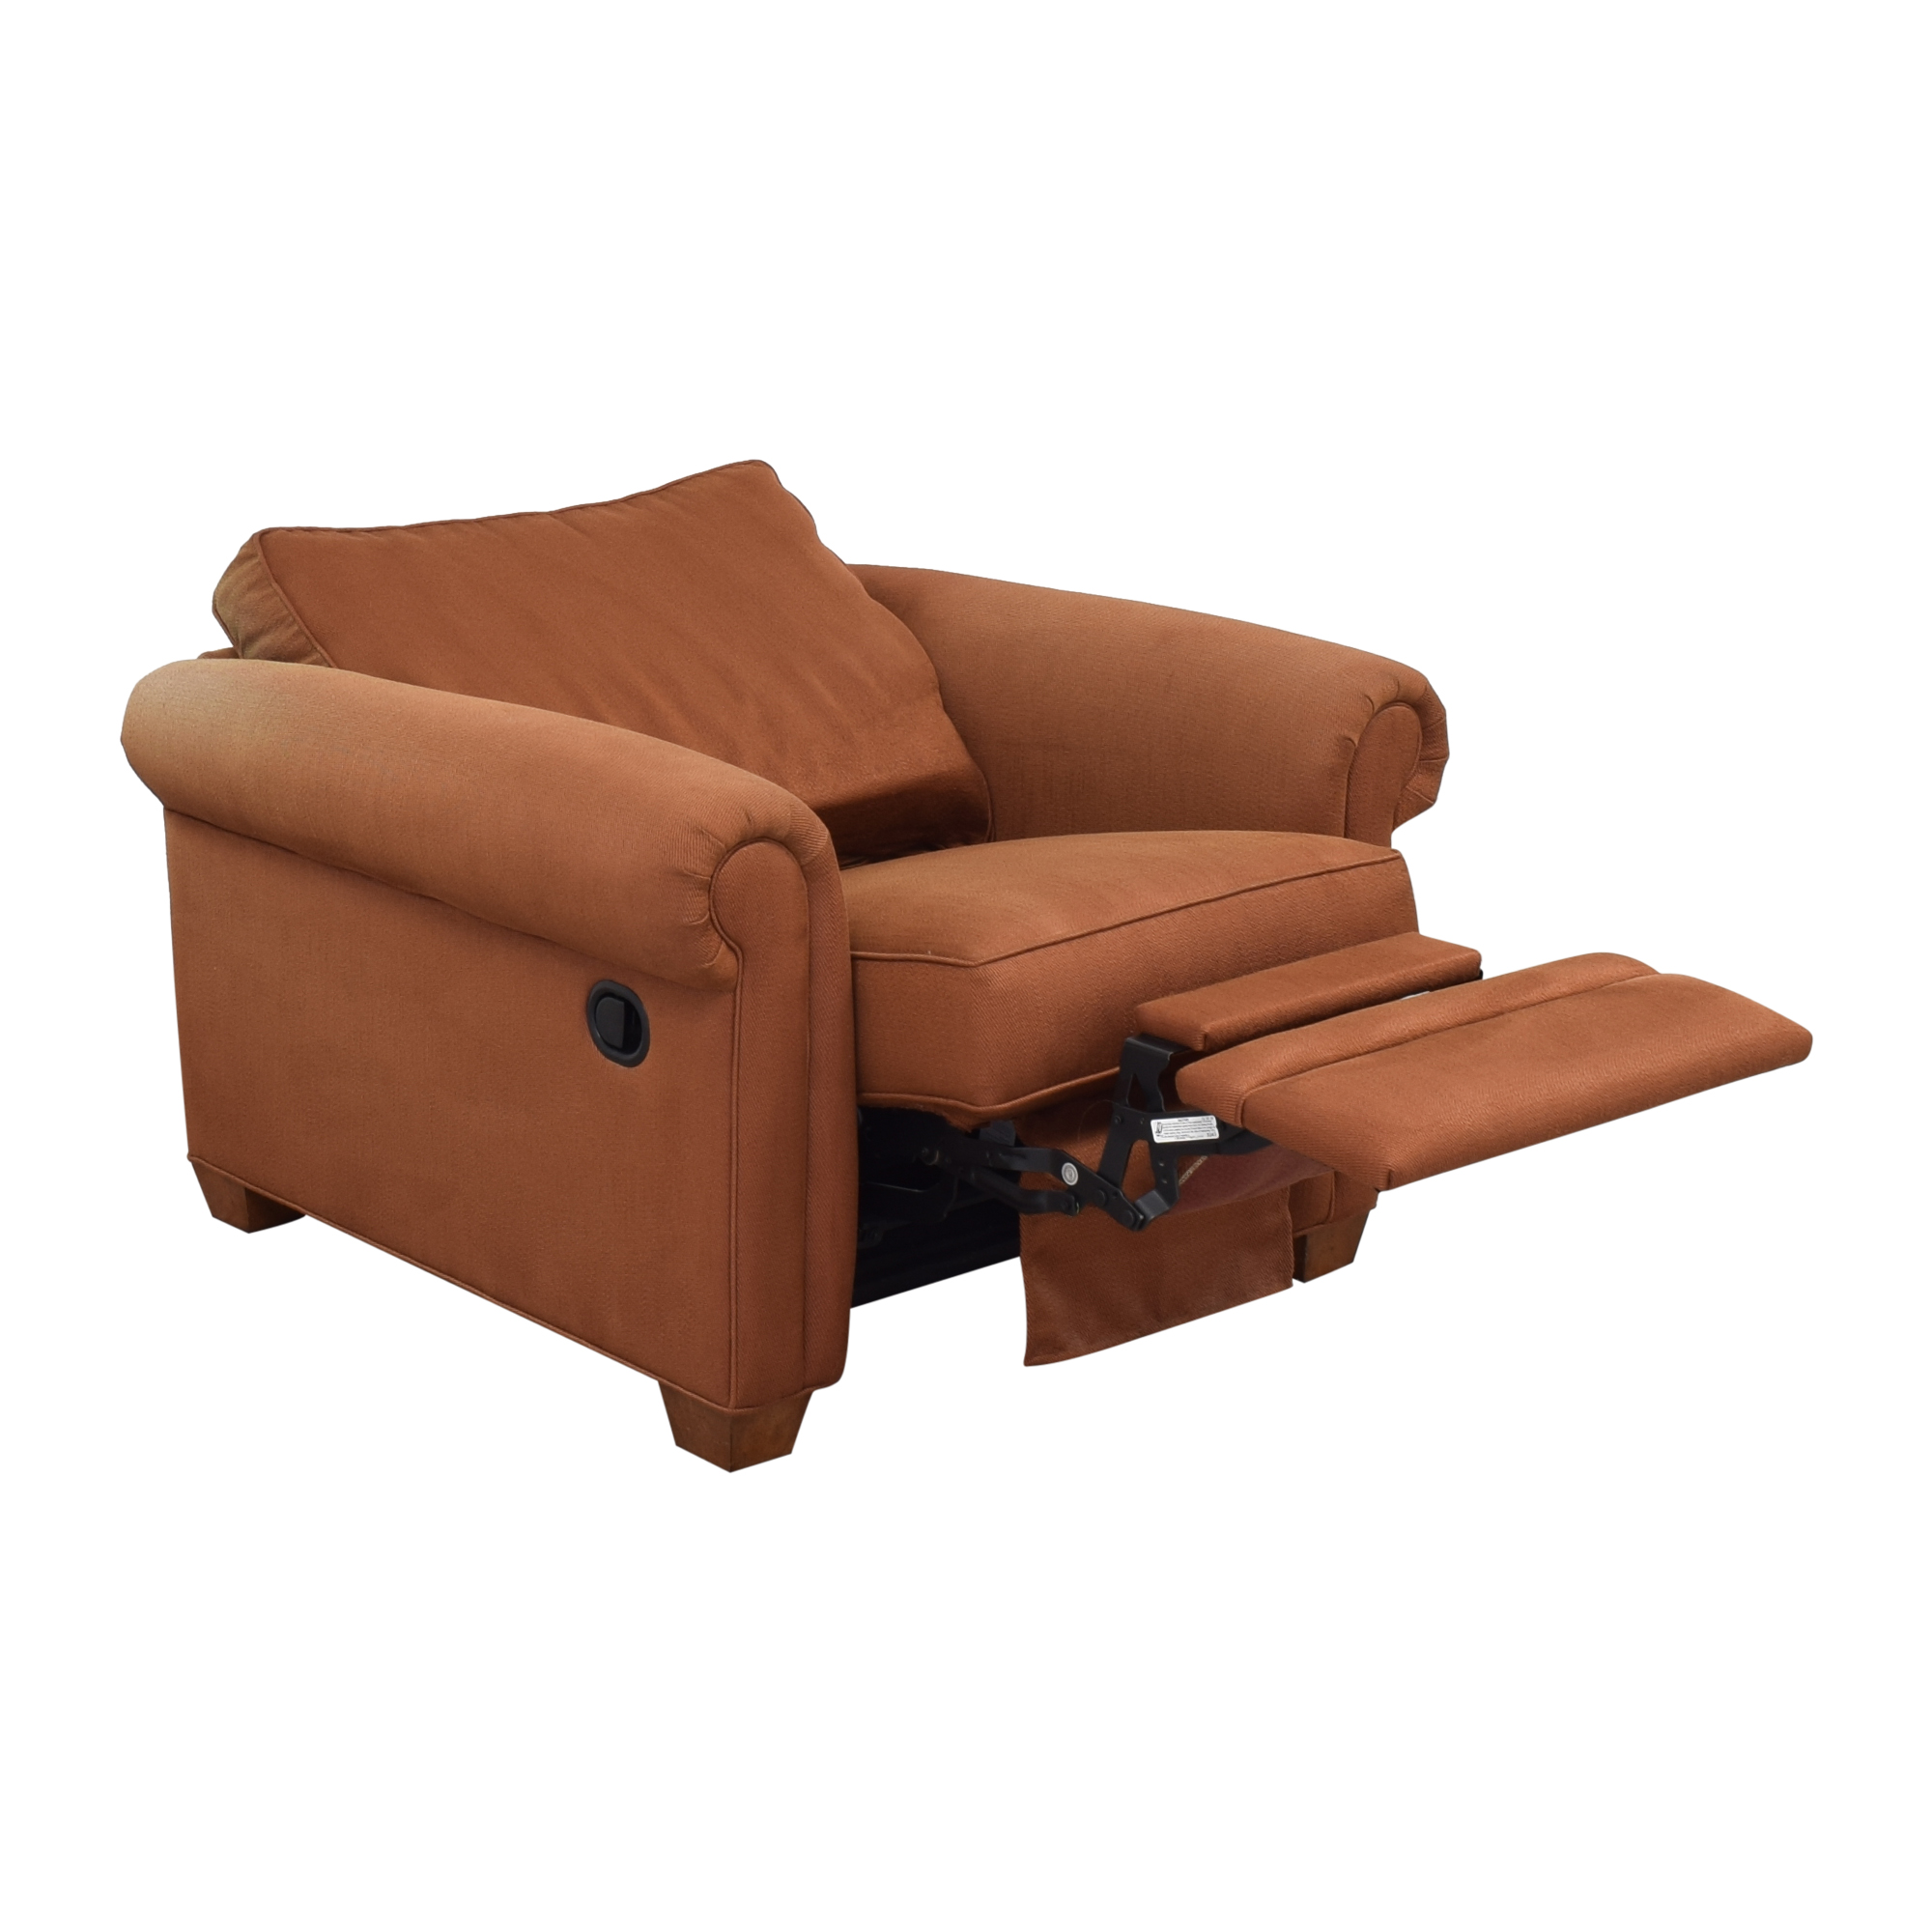 Ethan Allen Conor Recliner / Chairs